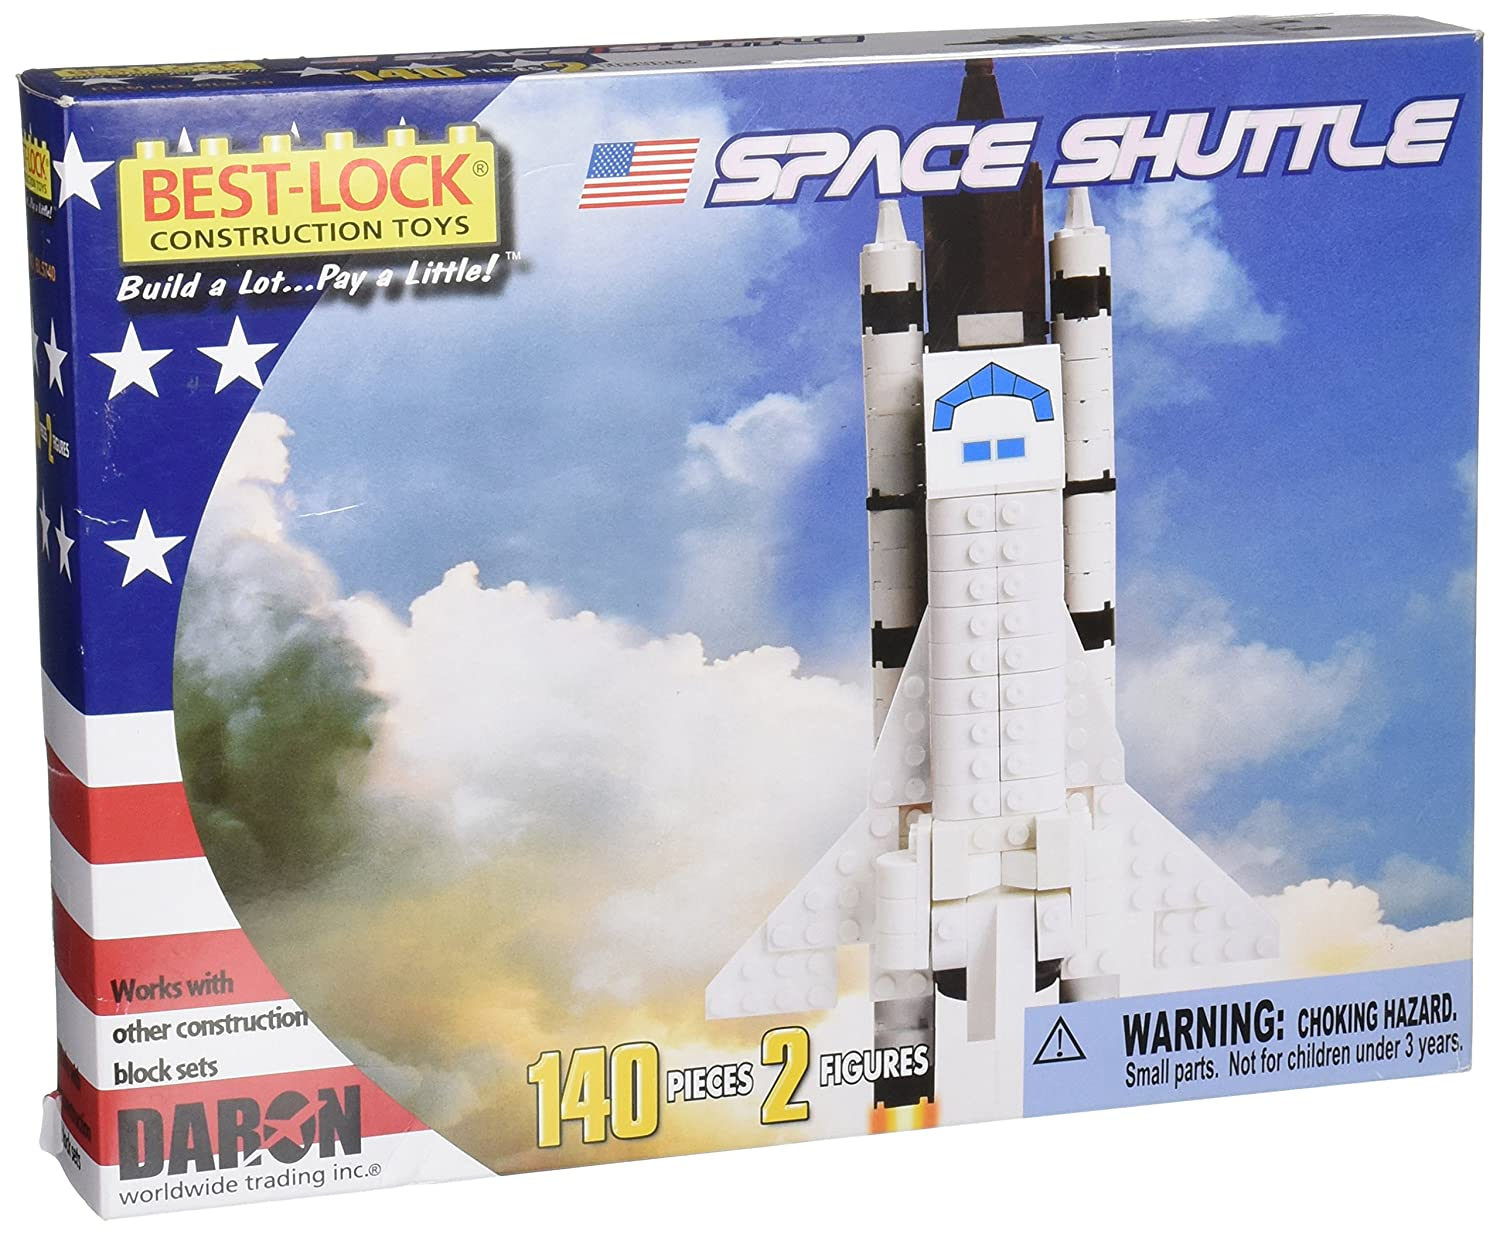 Best Lock PP-BL5740 Daron Space Shuttle Construction Toy